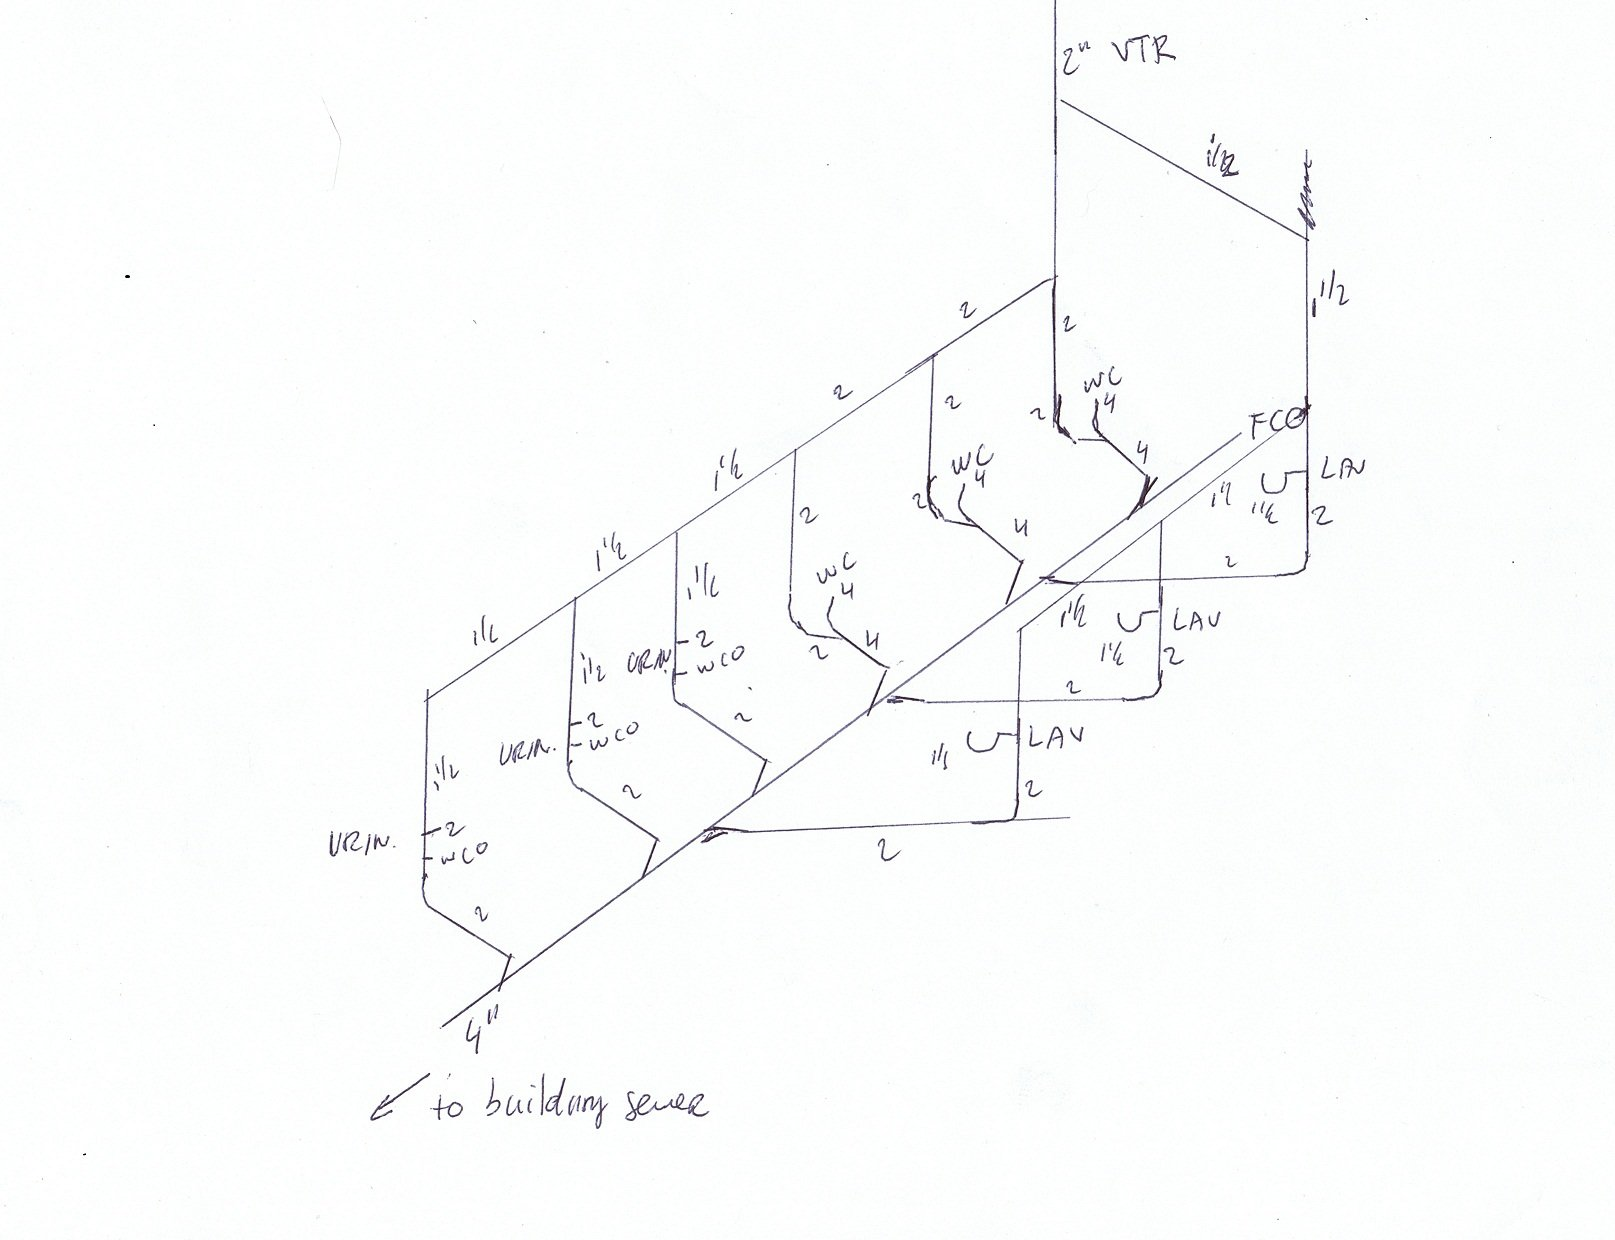 pipe schematic drawing